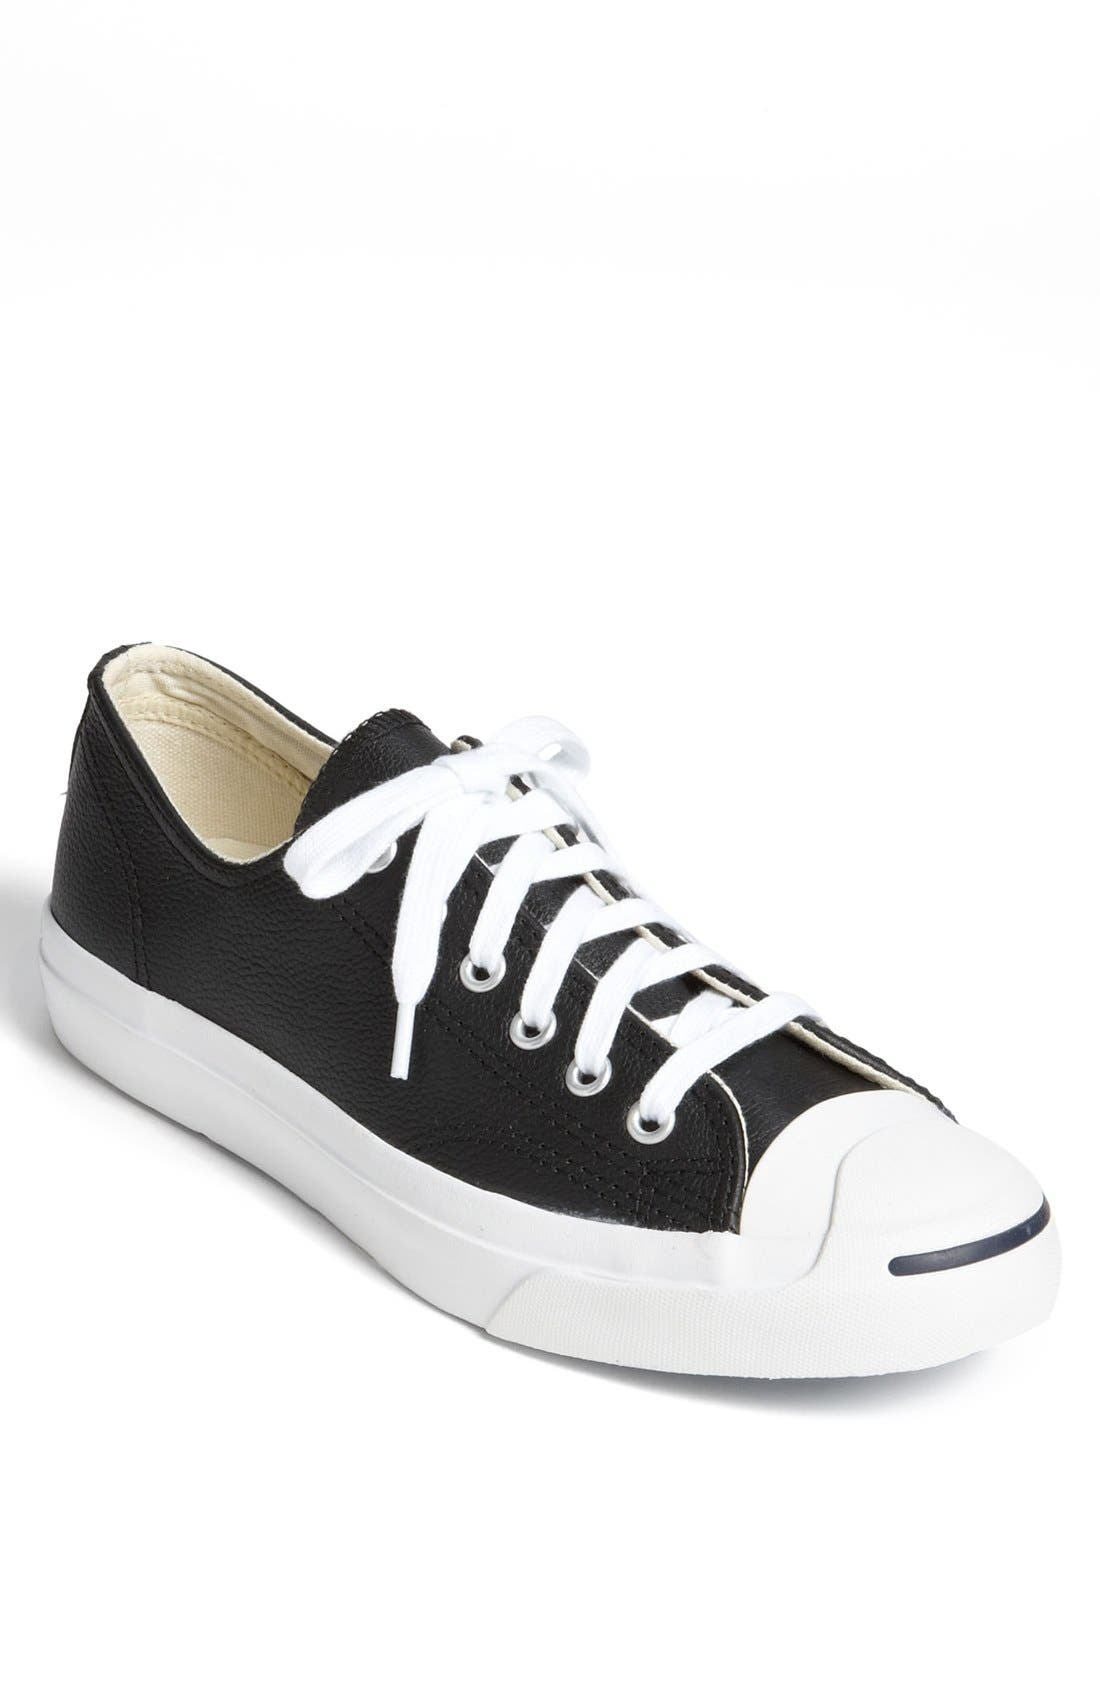 Alternate Image 1 Selected - Converse 'Jack Purcell' Leather Sneaker (Men)